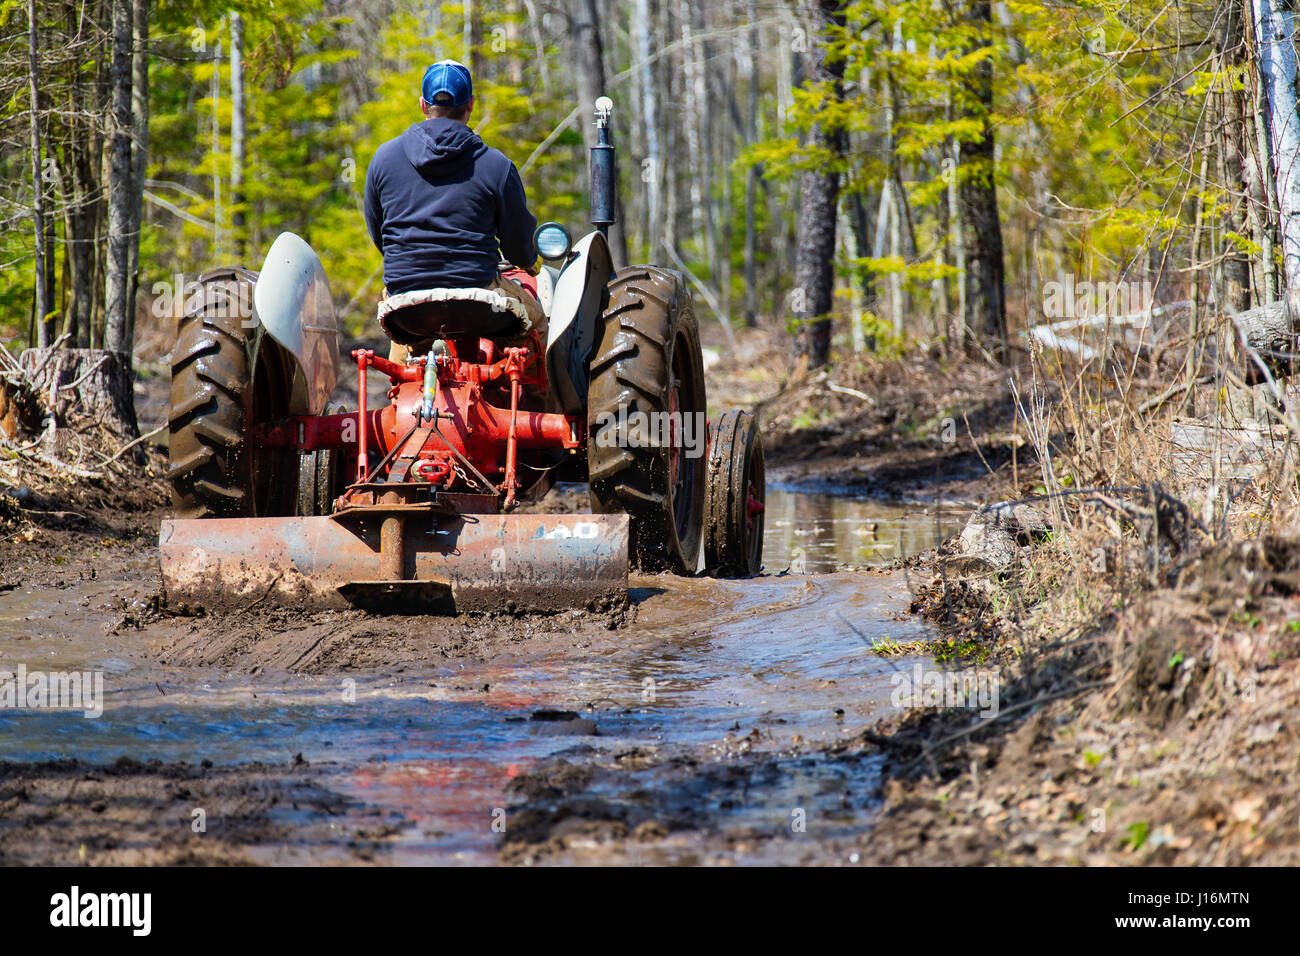 Man driving an old tractor while grading a muddy road. - Stock Image